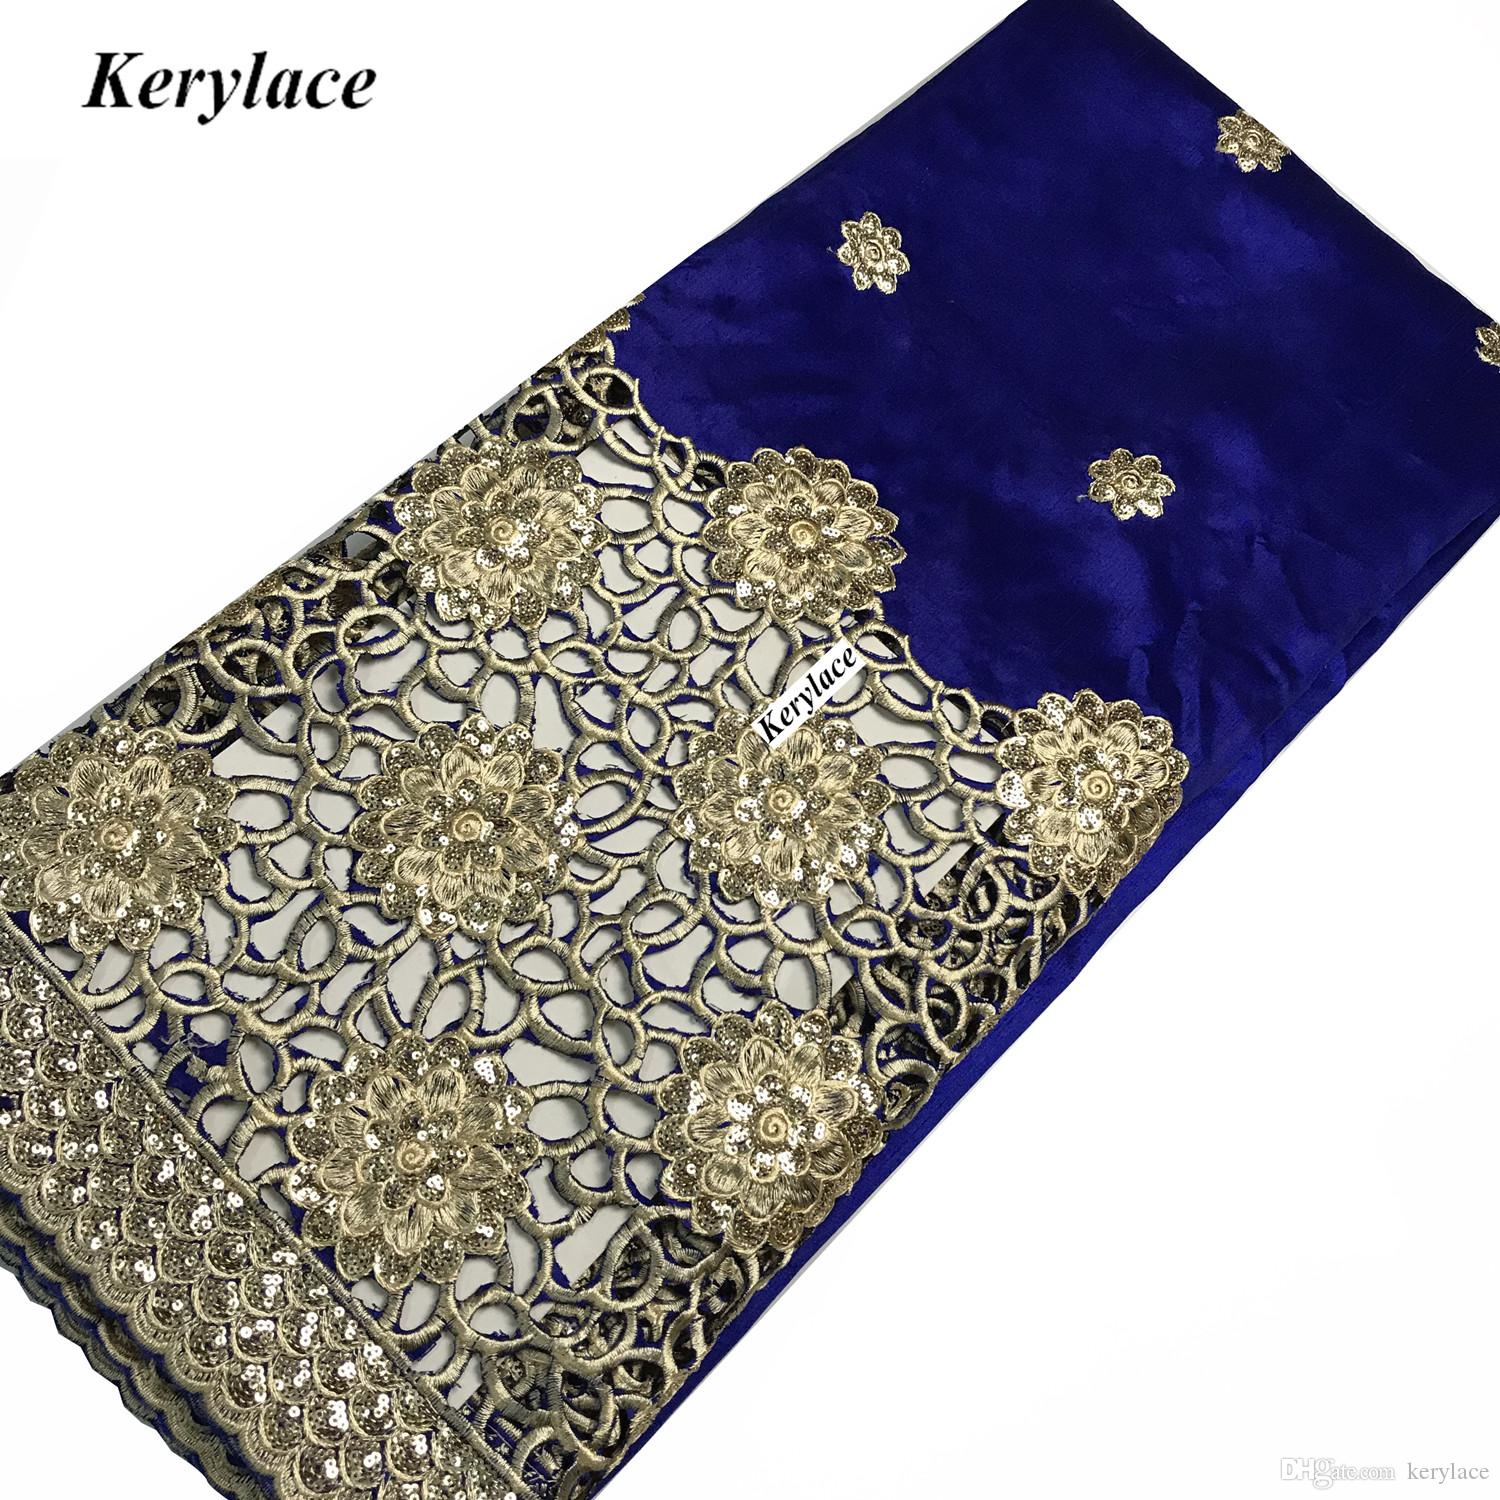 5 Yards Sewing Craft Embroidered Nigerian George Lace High Quality Raw Silk African George Fabric Women Dress French Sequins Fabric KRL-9000